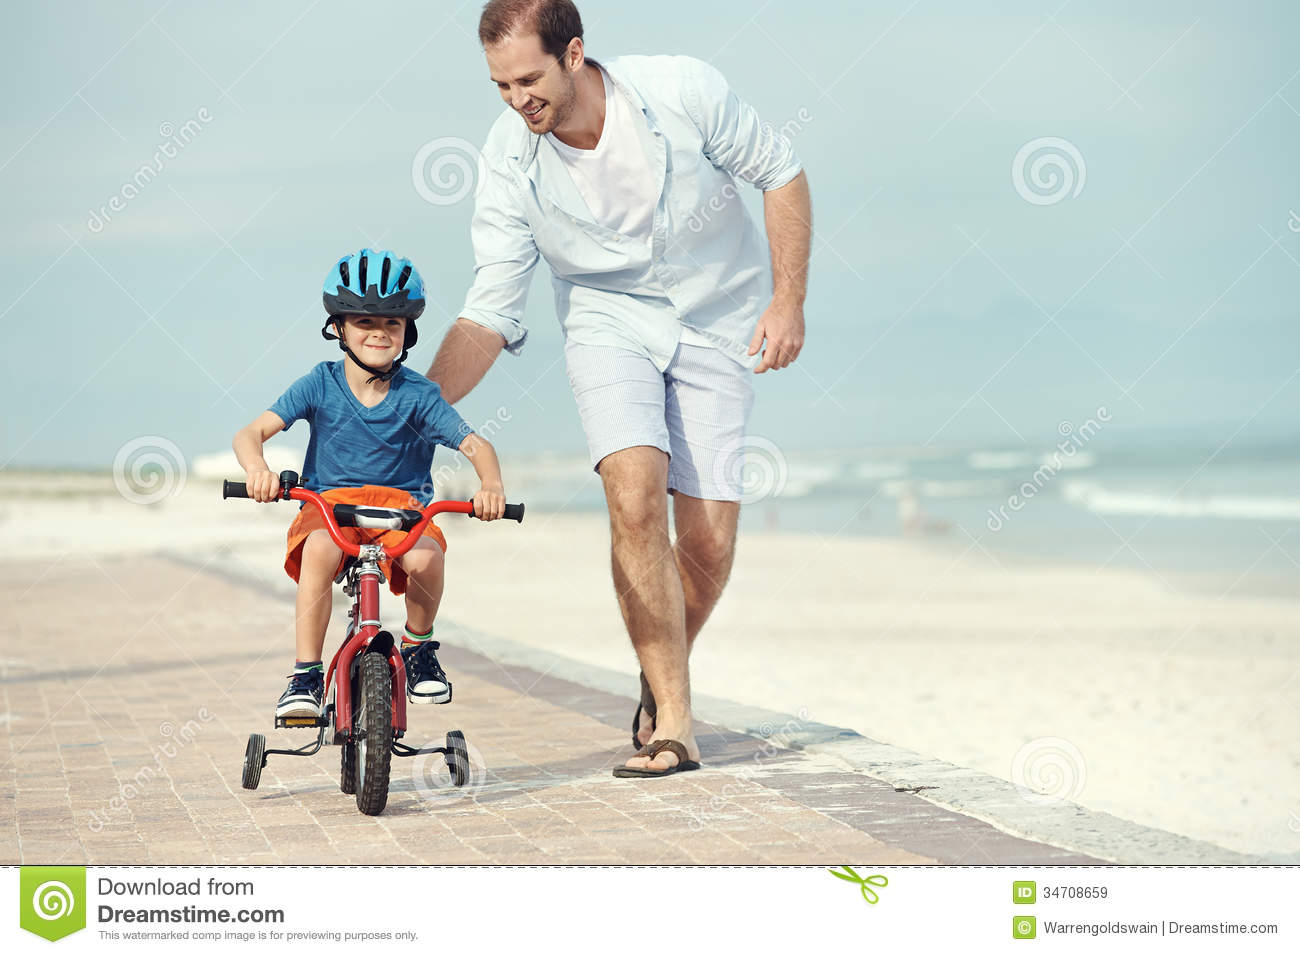 Learning To Ride A Bike Stock Image Image Of Healthy